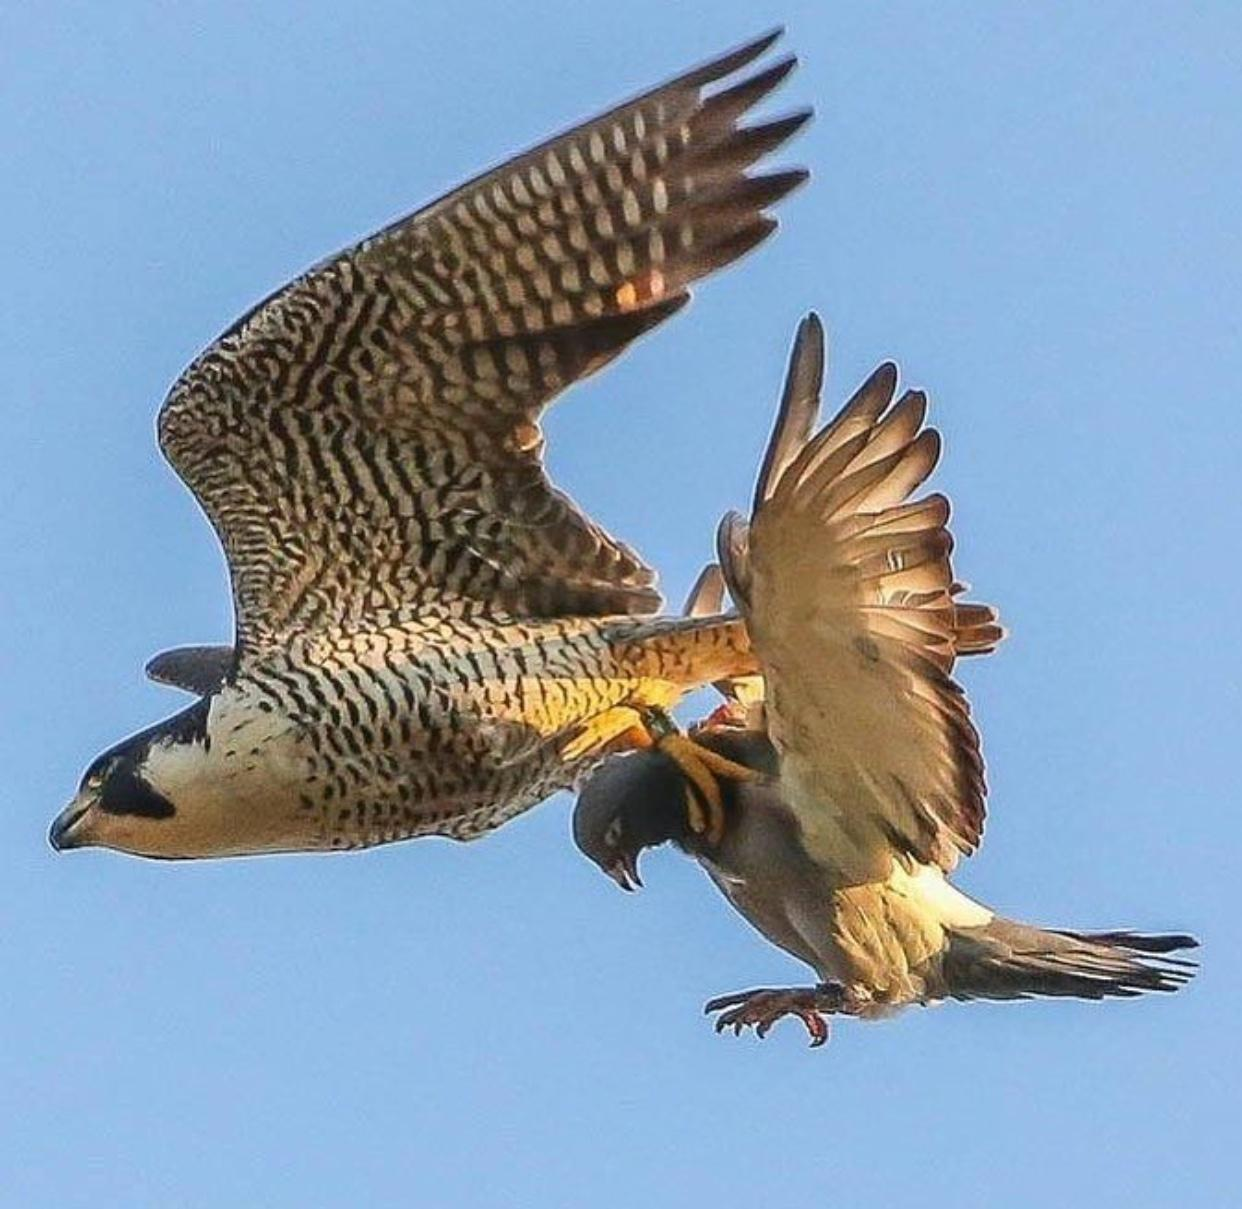 how do peregrine falcons catch their prey.